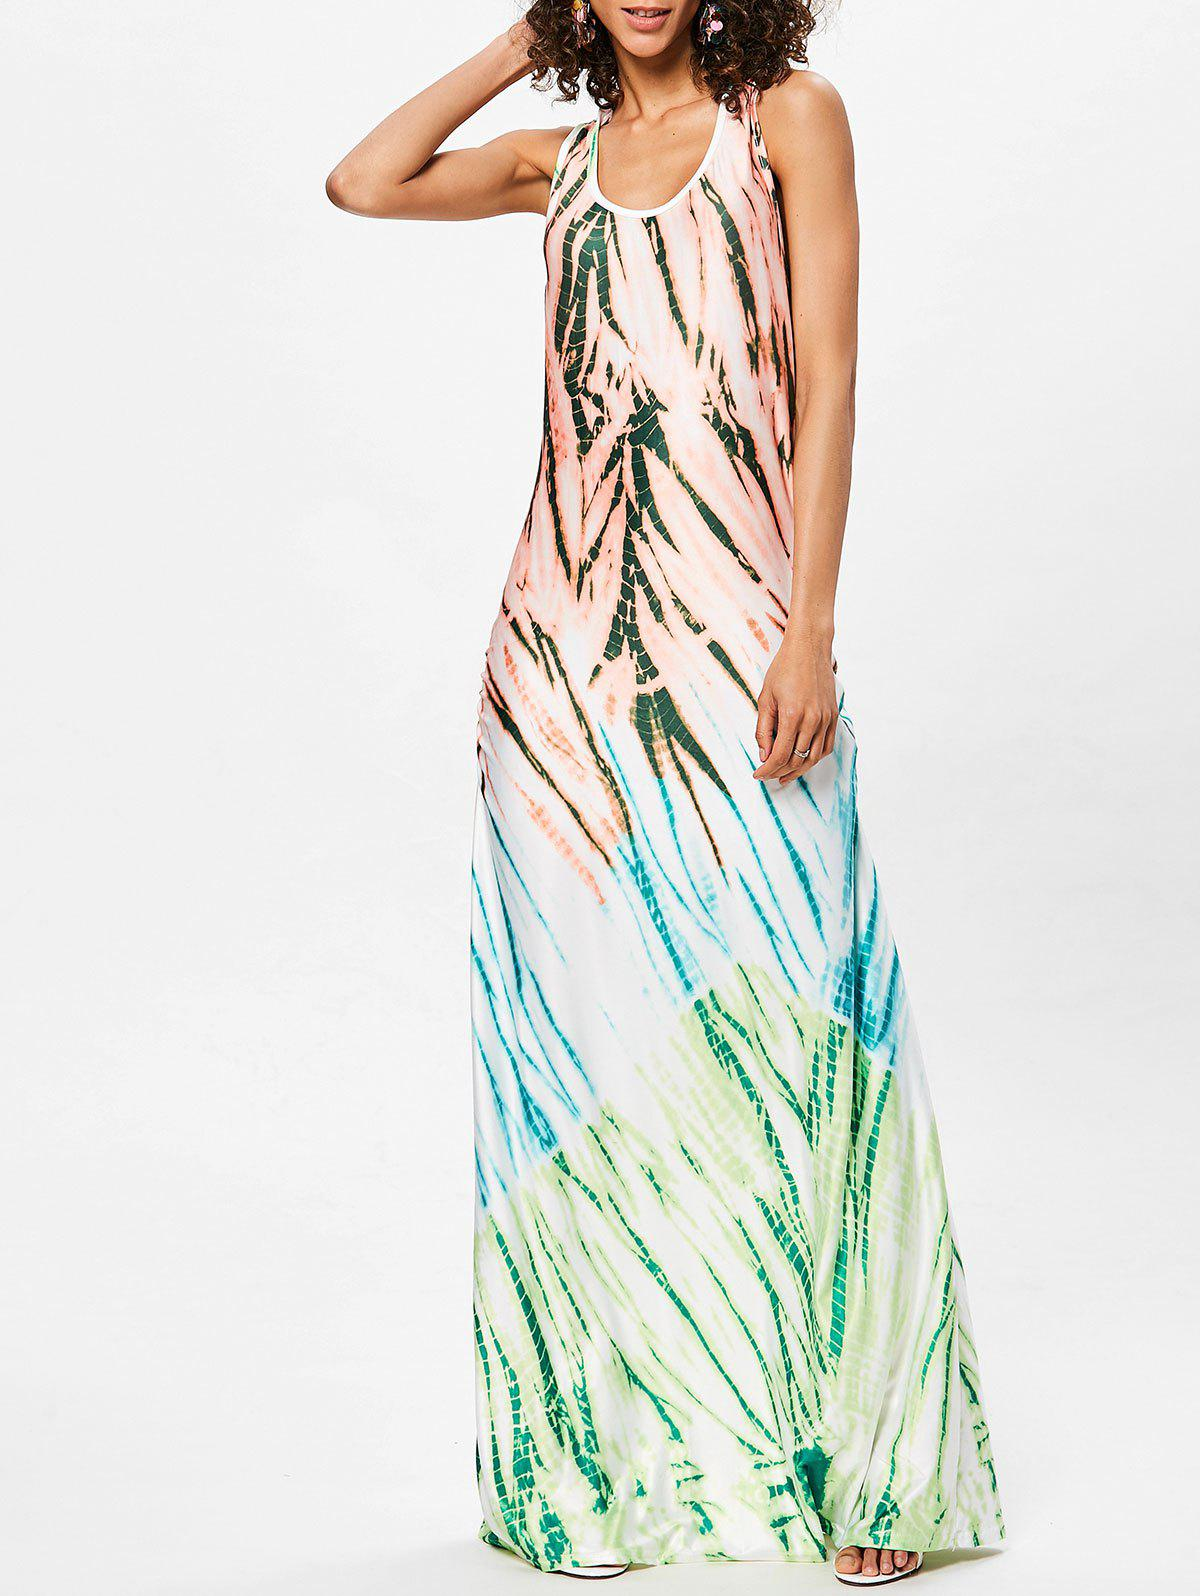 Scoop Neck Printed Floor Length Dress - GREEN L